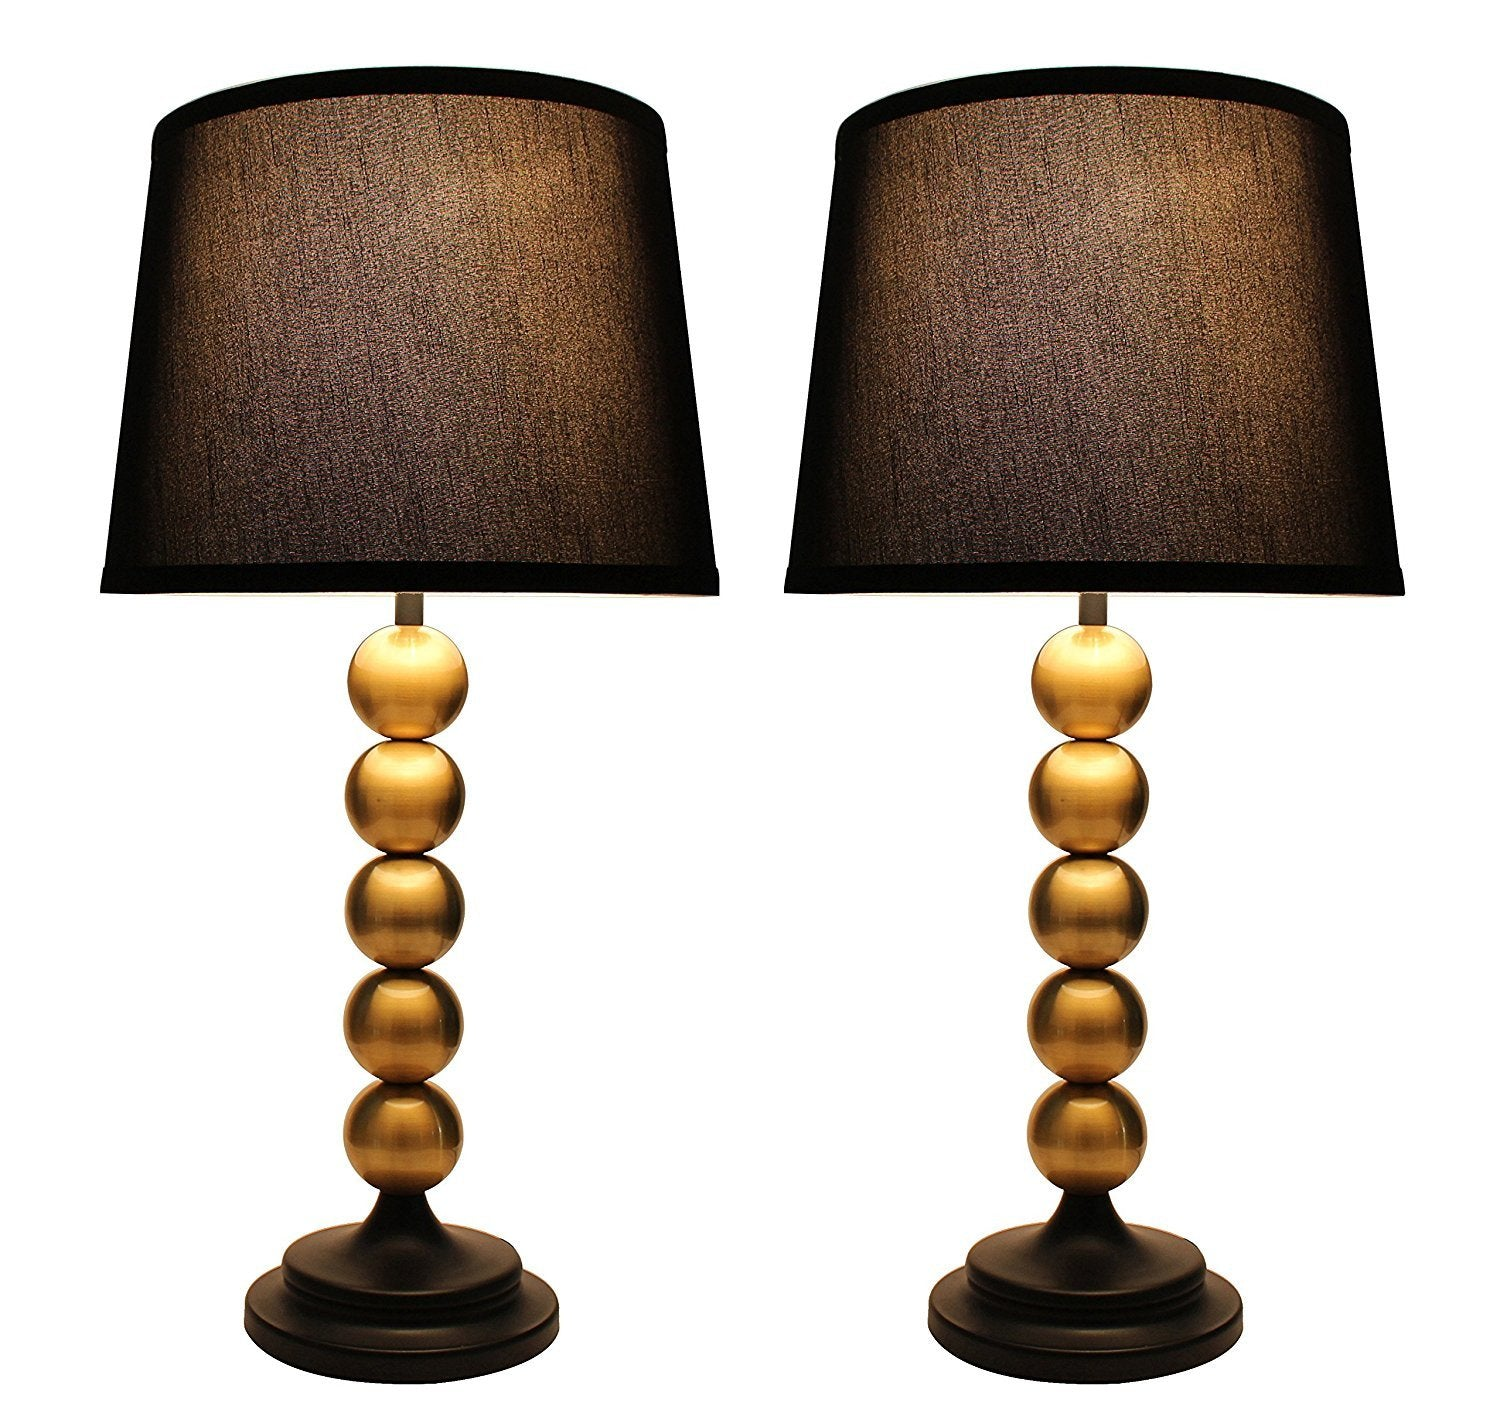 Set of 2 Abbey Table Lamps with Shades